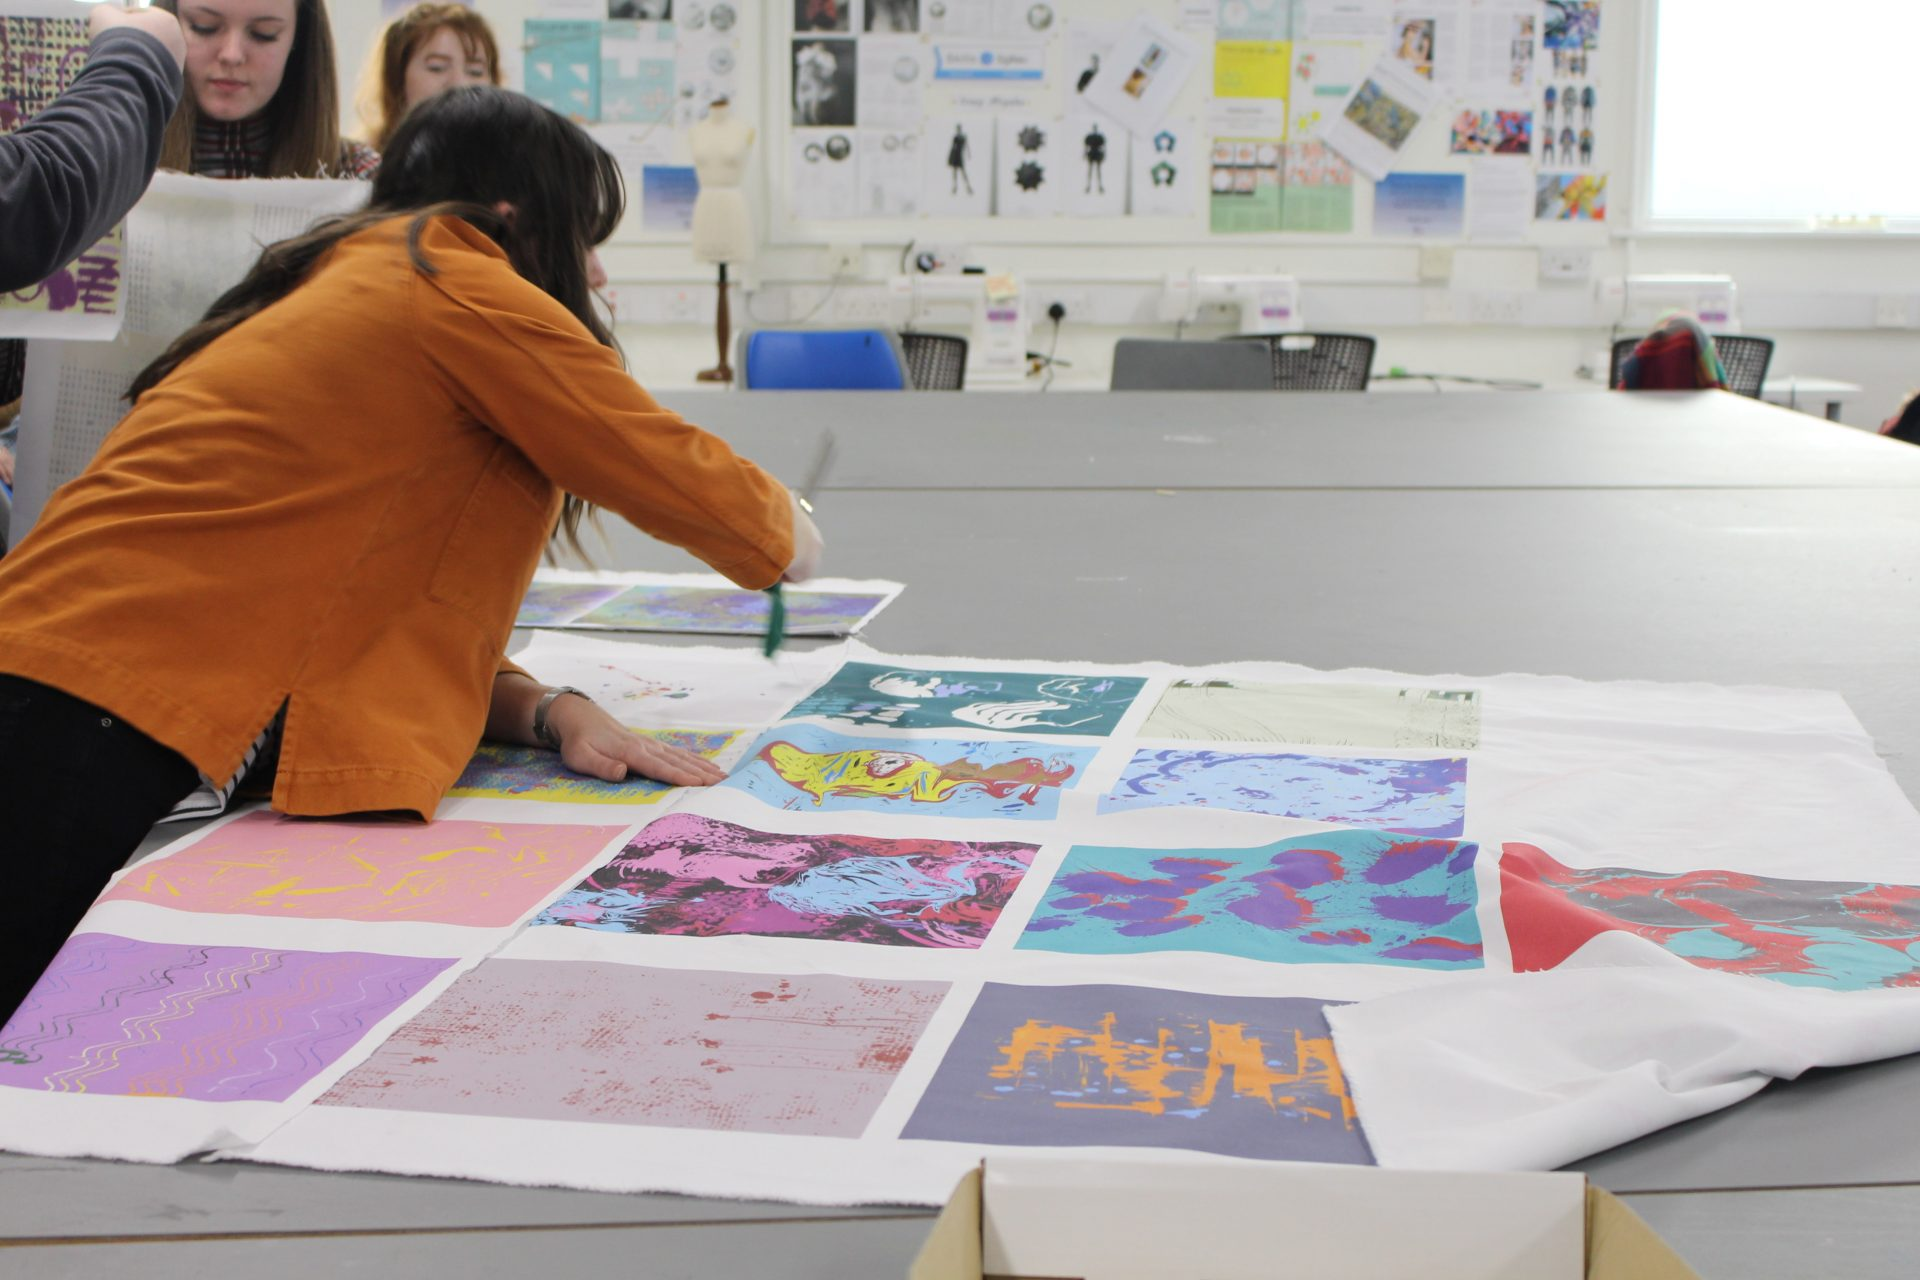 Textile masterclass at Gower College Swansea. Participant cutting printed fabric.